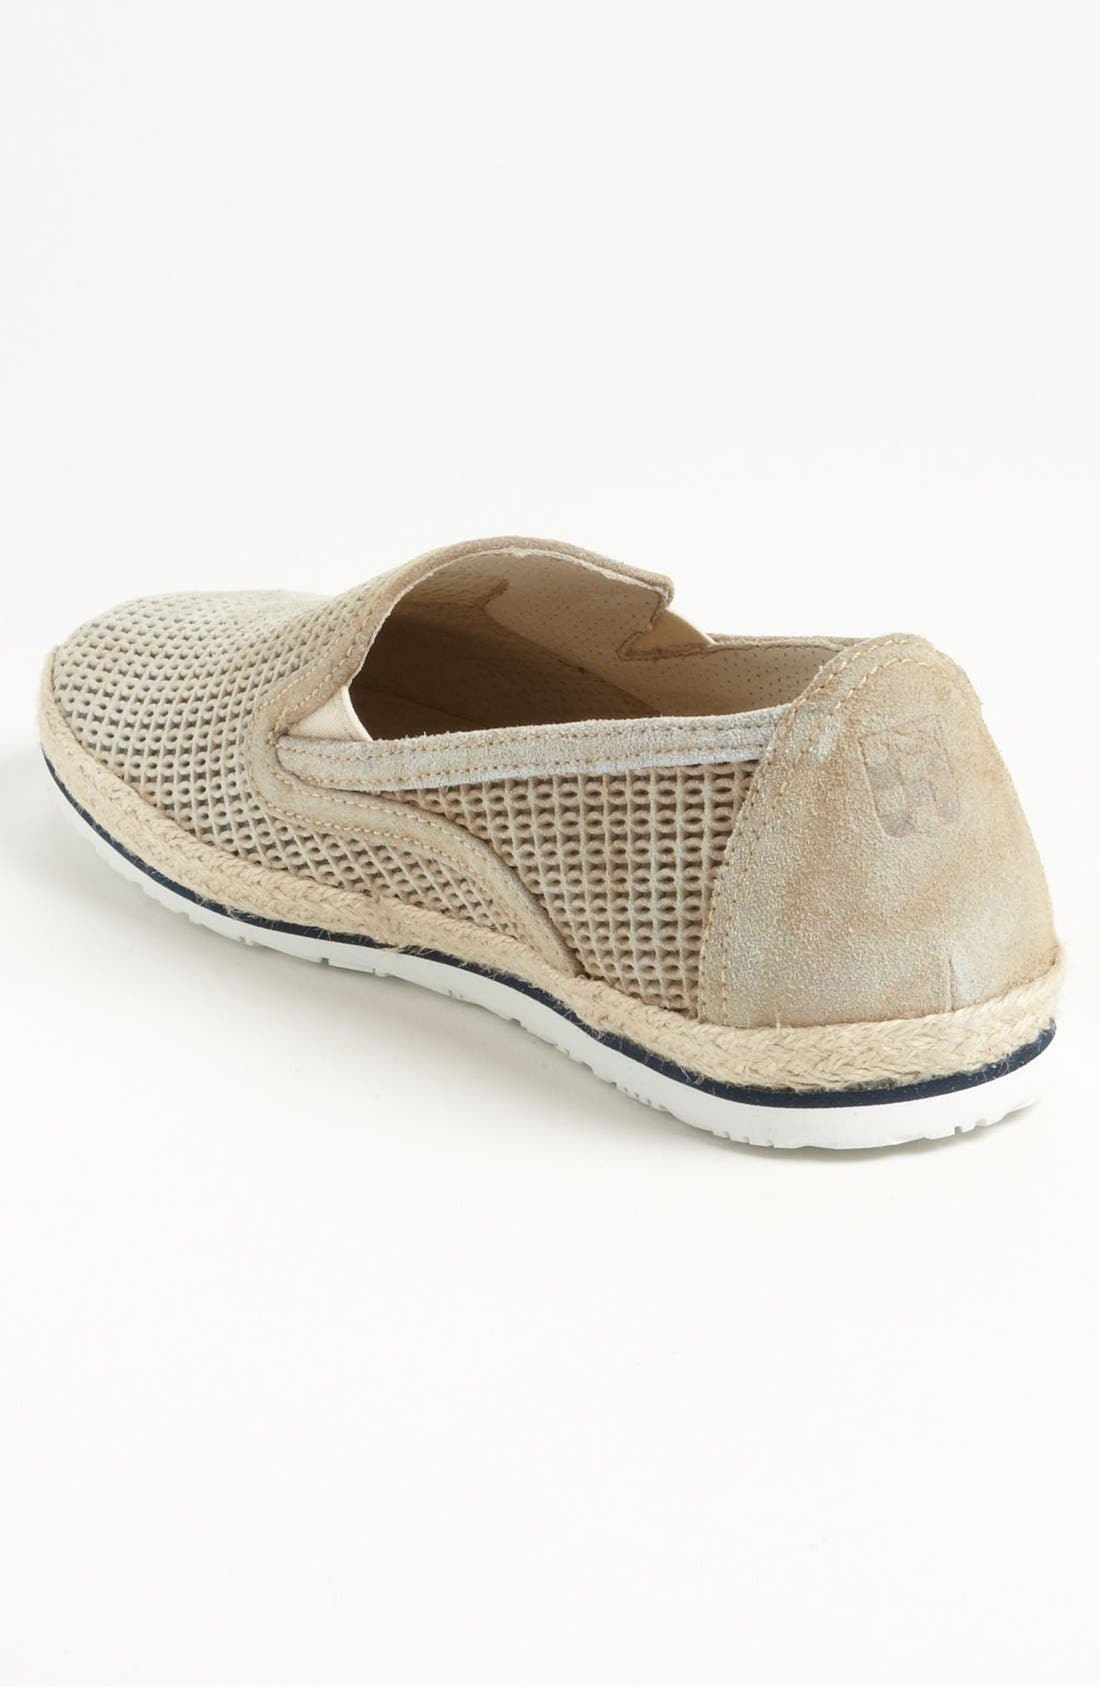 Alternate Image 2  - Vince Camuto 'Sellero' Slip-On